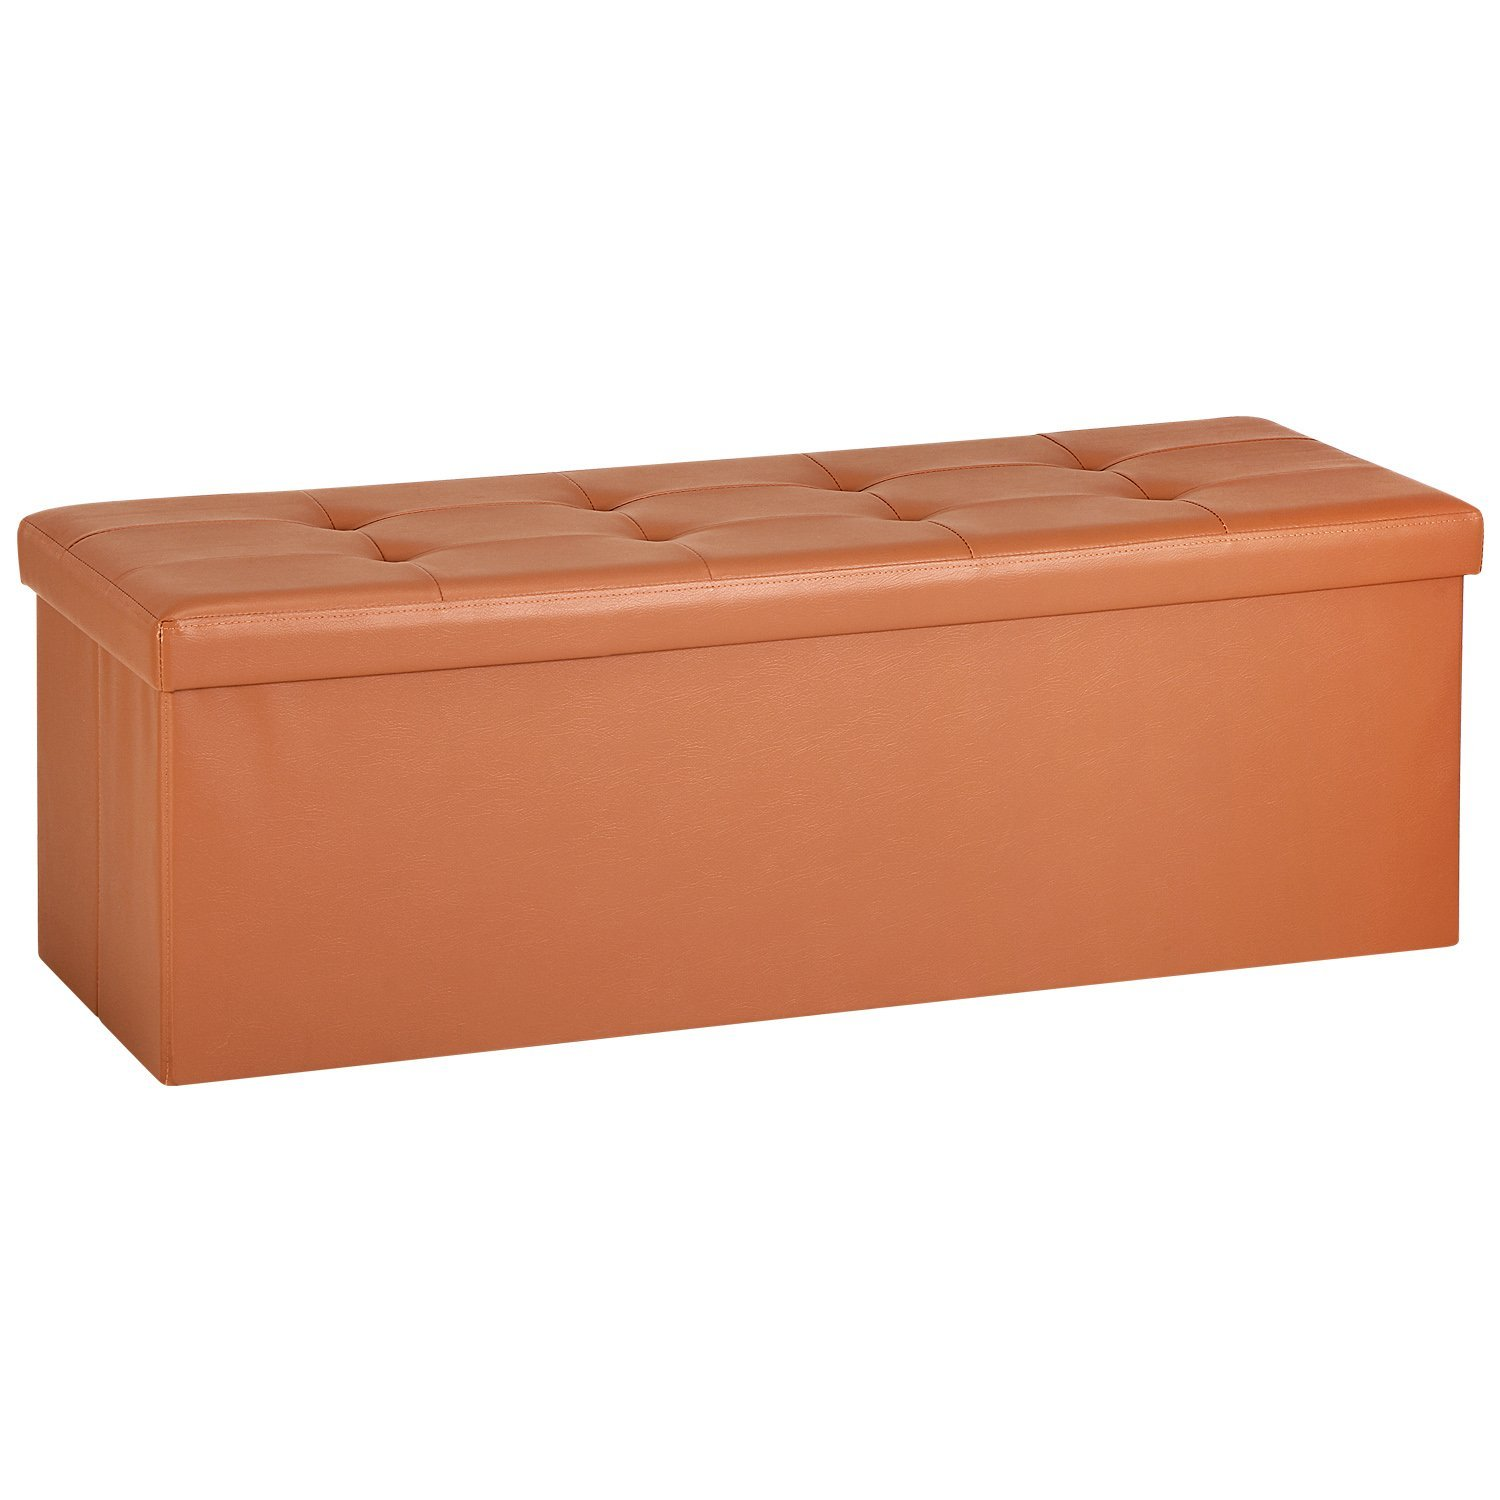 Ollieroo Faux Leather Folding Storage Ottoman Bench Seat Foot